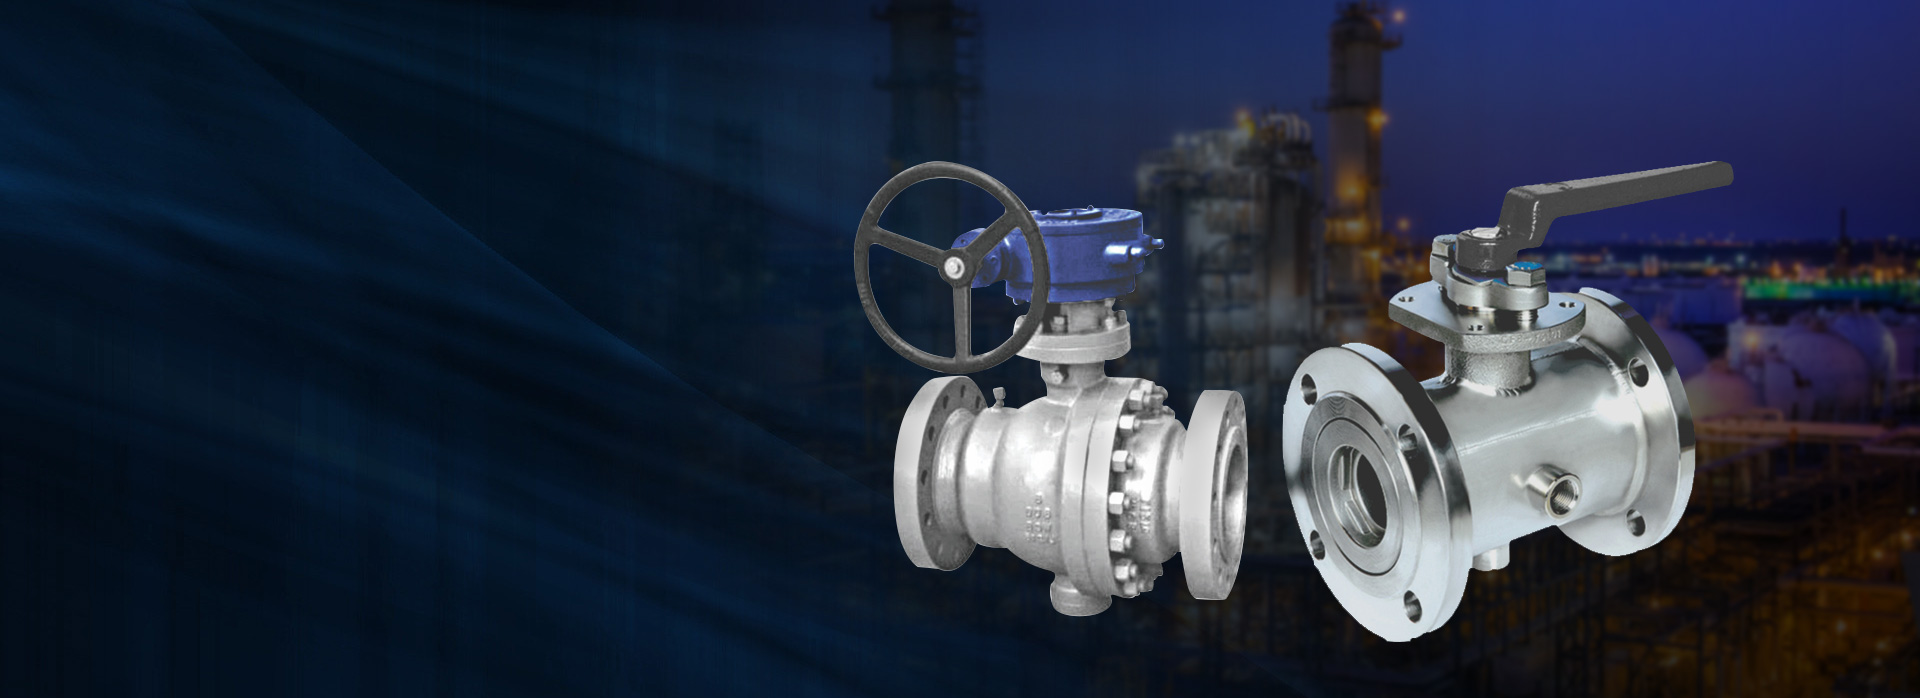 YDB LLP valves products: Jacketed Ball Valves, Industrial Process Floating Ball Valves